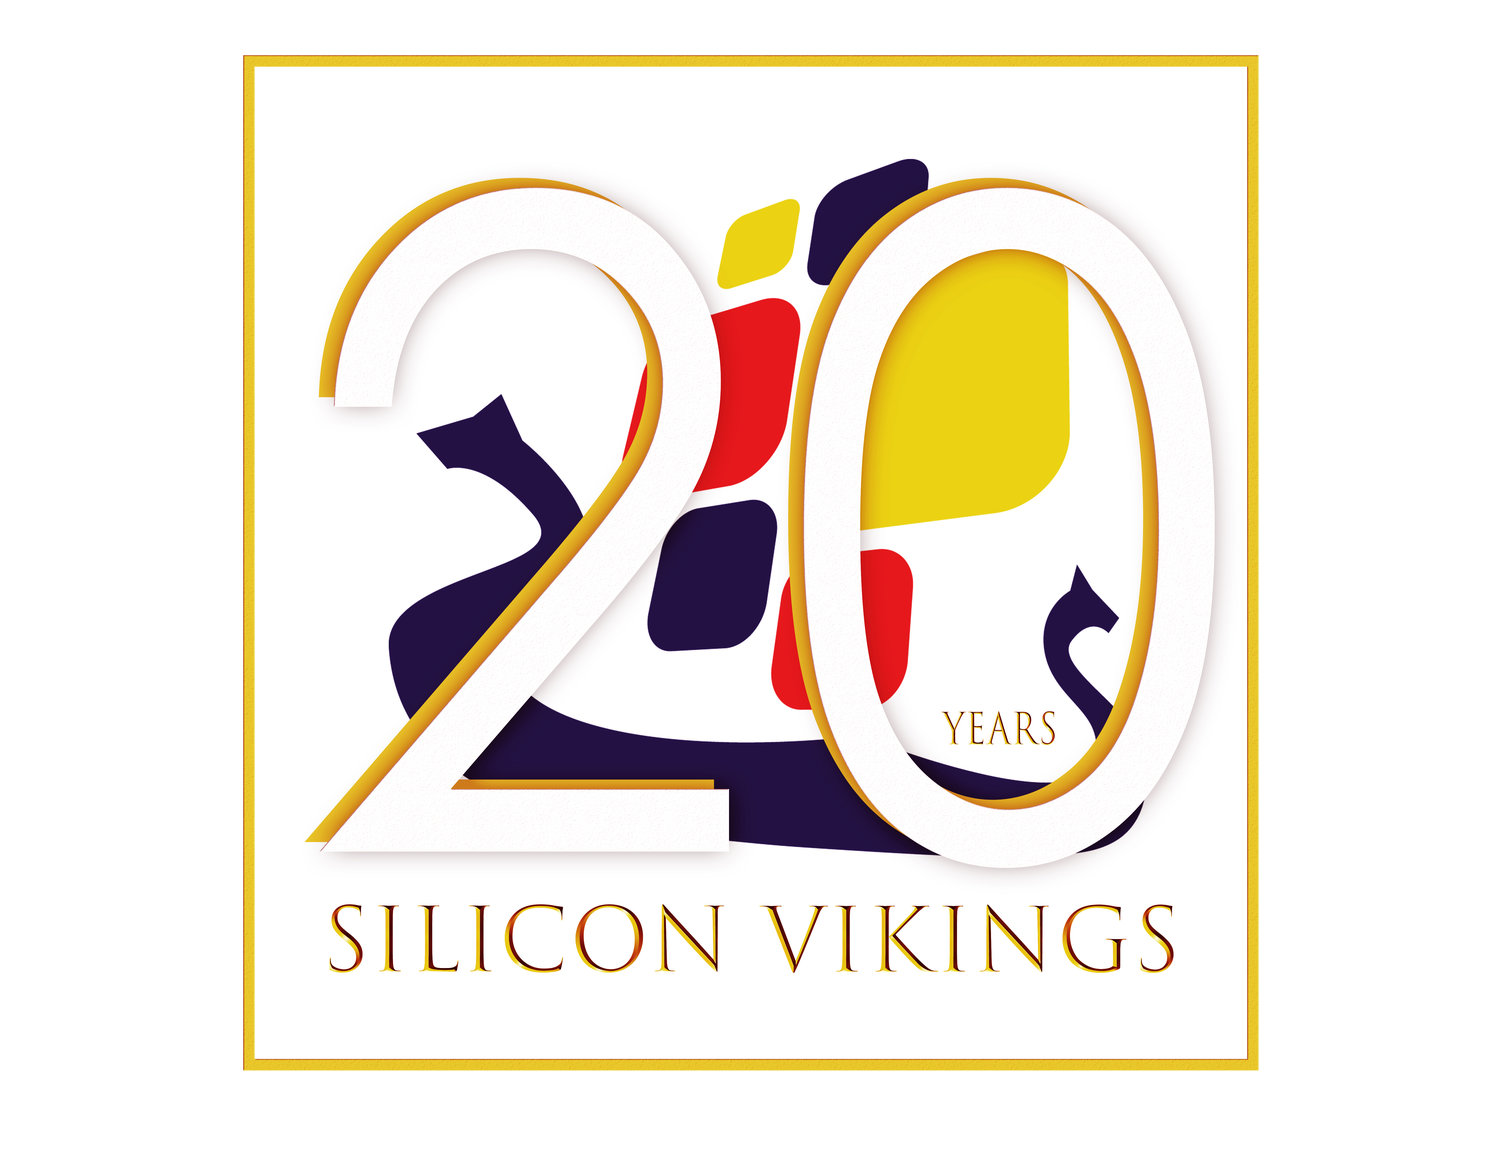 SiliconVikings